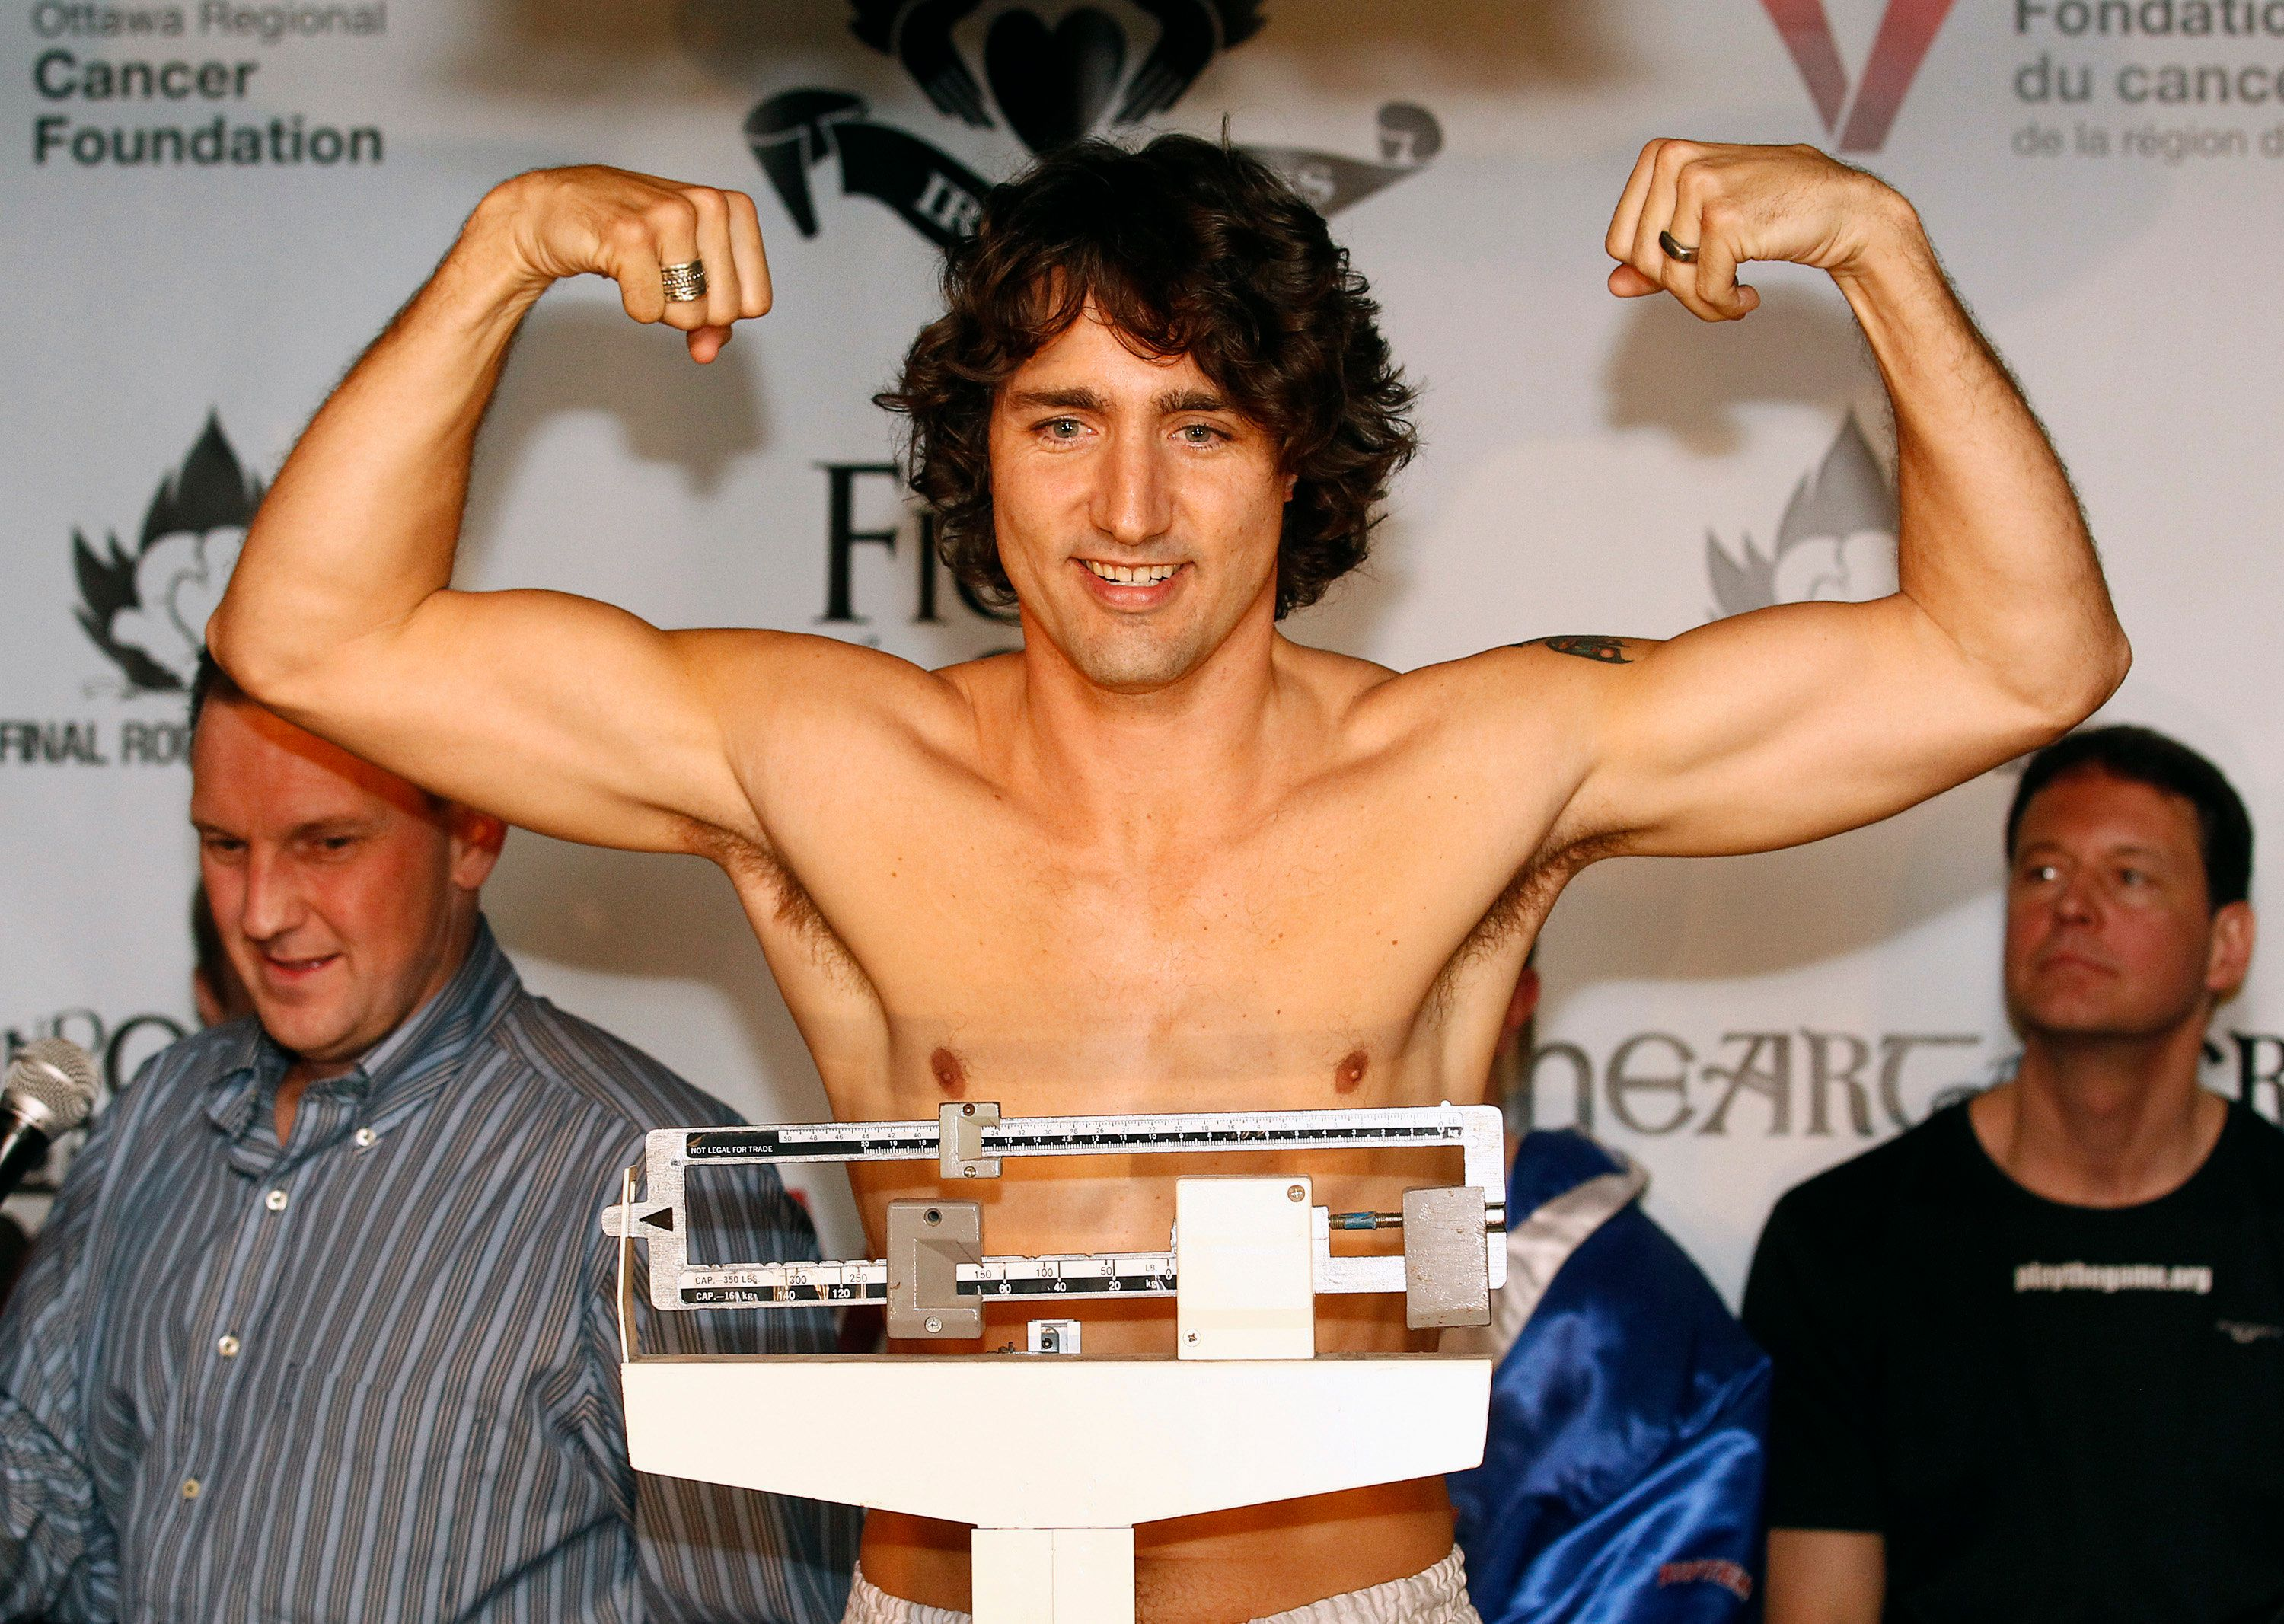 Liberal Member of Parliament Justin Trudeau gestures while weighing-in for a charity boxing match in Ottawa March 28, 2012. Trudeau and Conservative Senator Patrick Brazeau will face-off against each other March 31. REUTERS/Chris Wattie (CANADA - Tags: POLITICS SPORT BOXING)